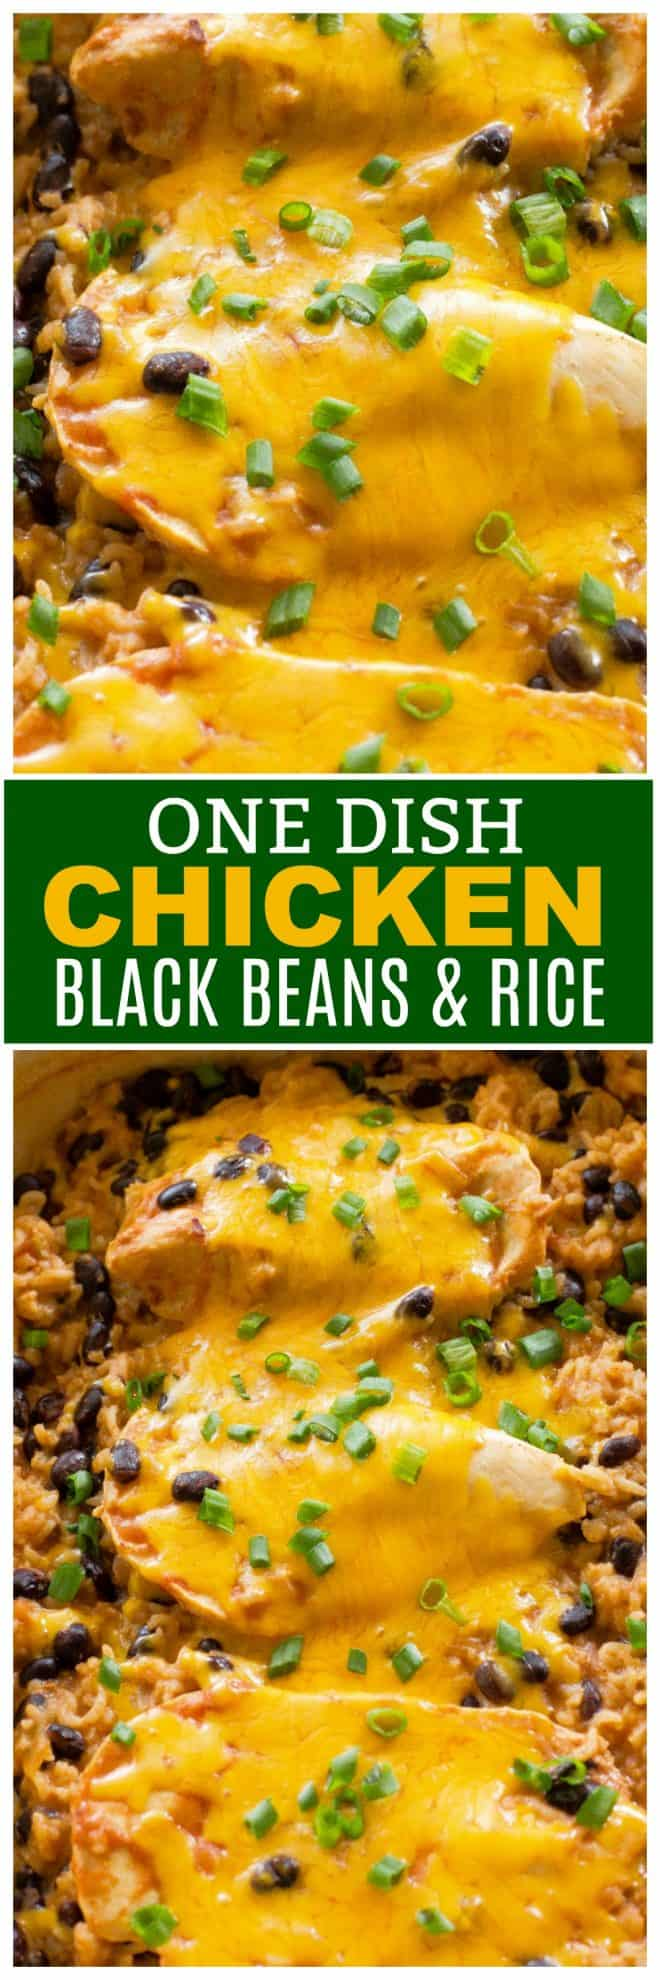 One Dish Chicken, Black Beans, and Rice